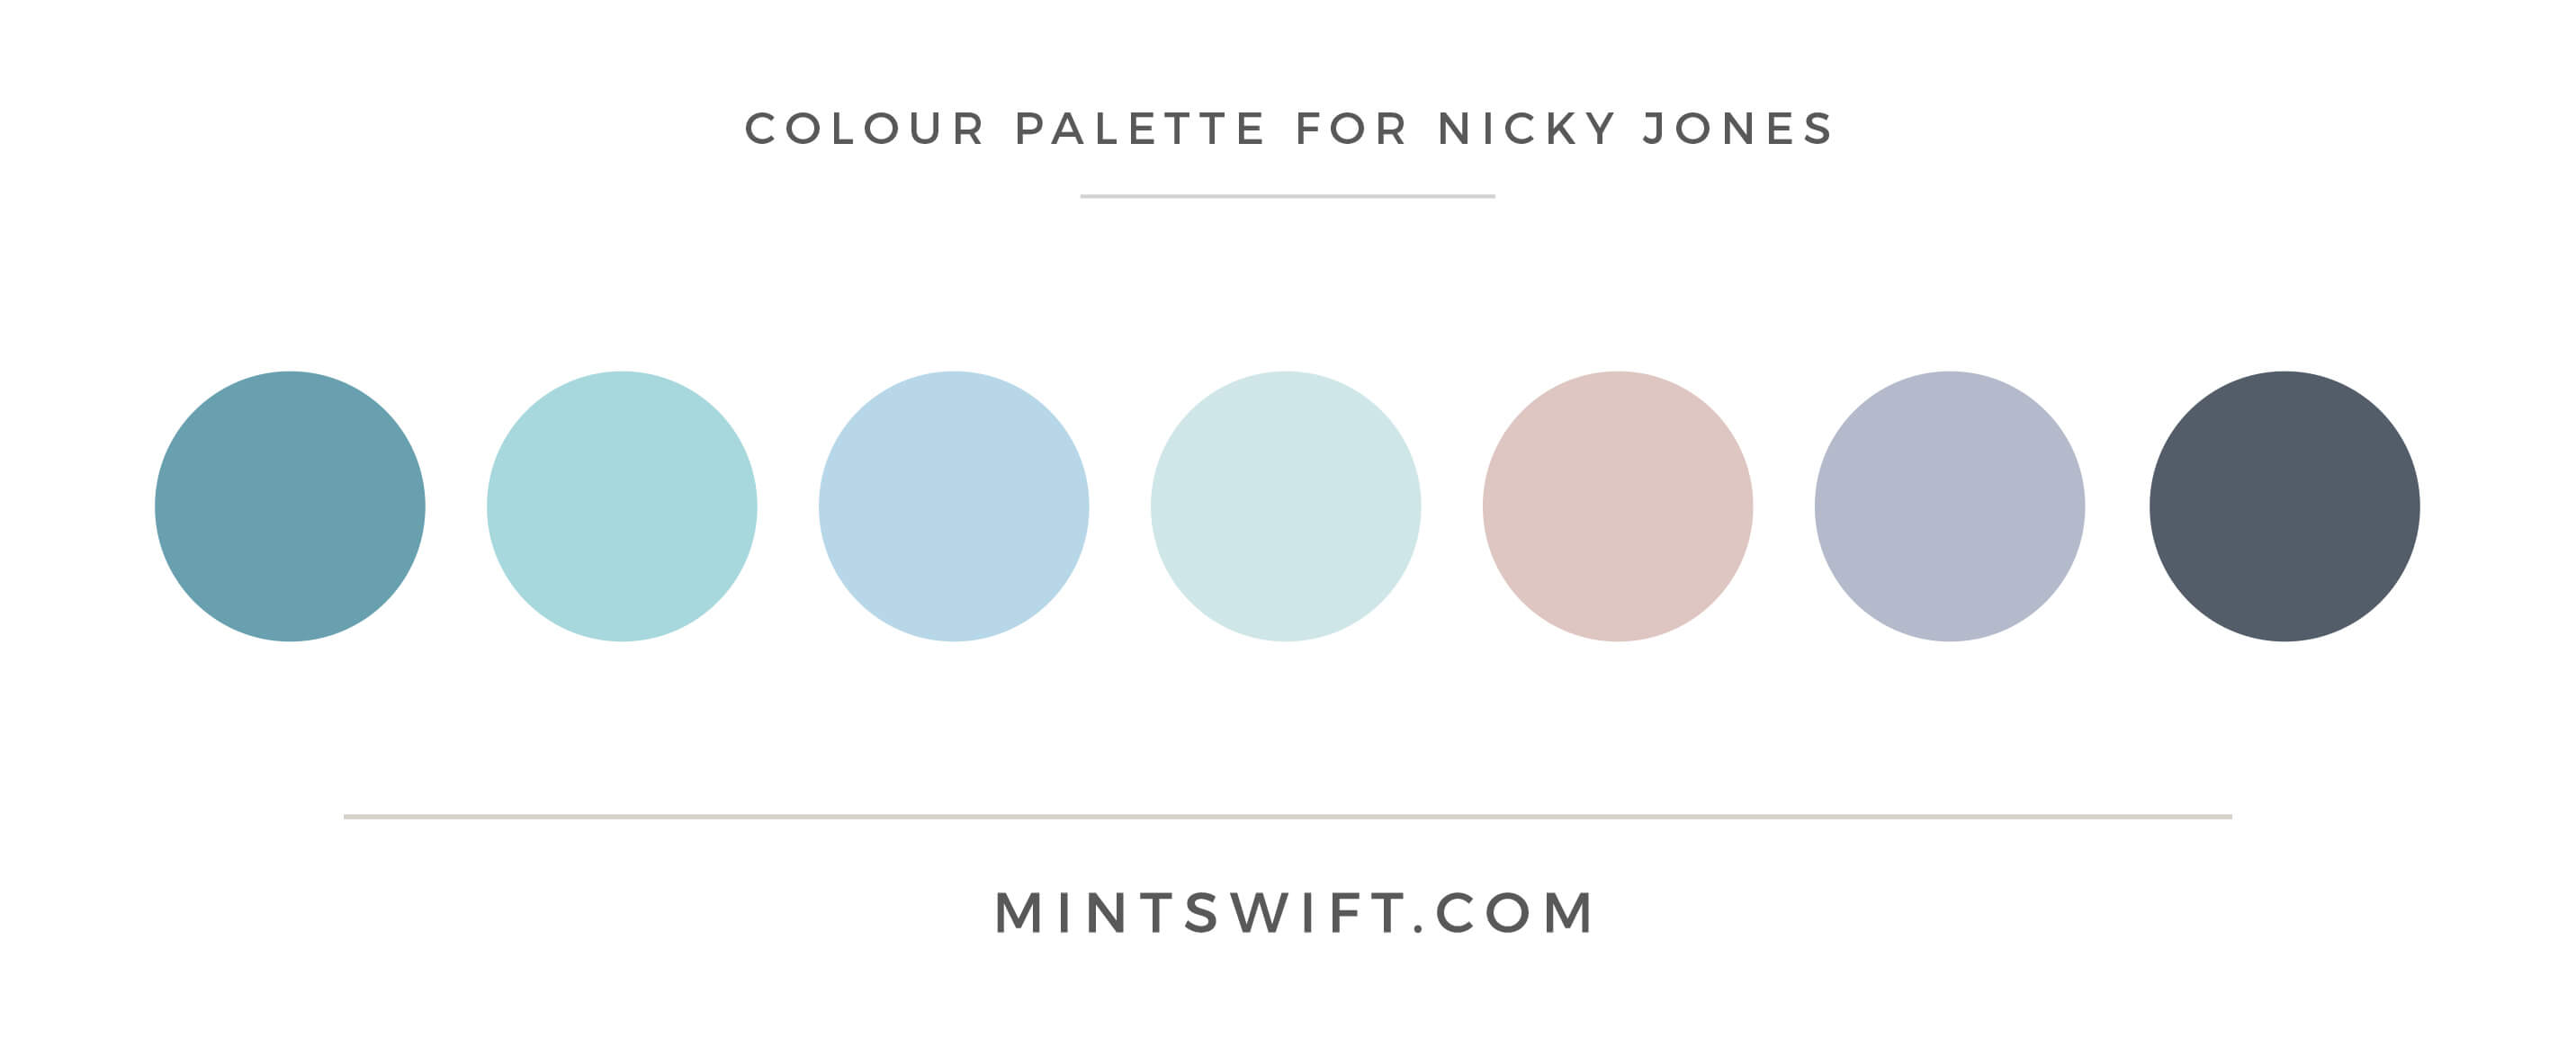 Nicky Jones - Colour Palette - Brand Design Package - MintSwift